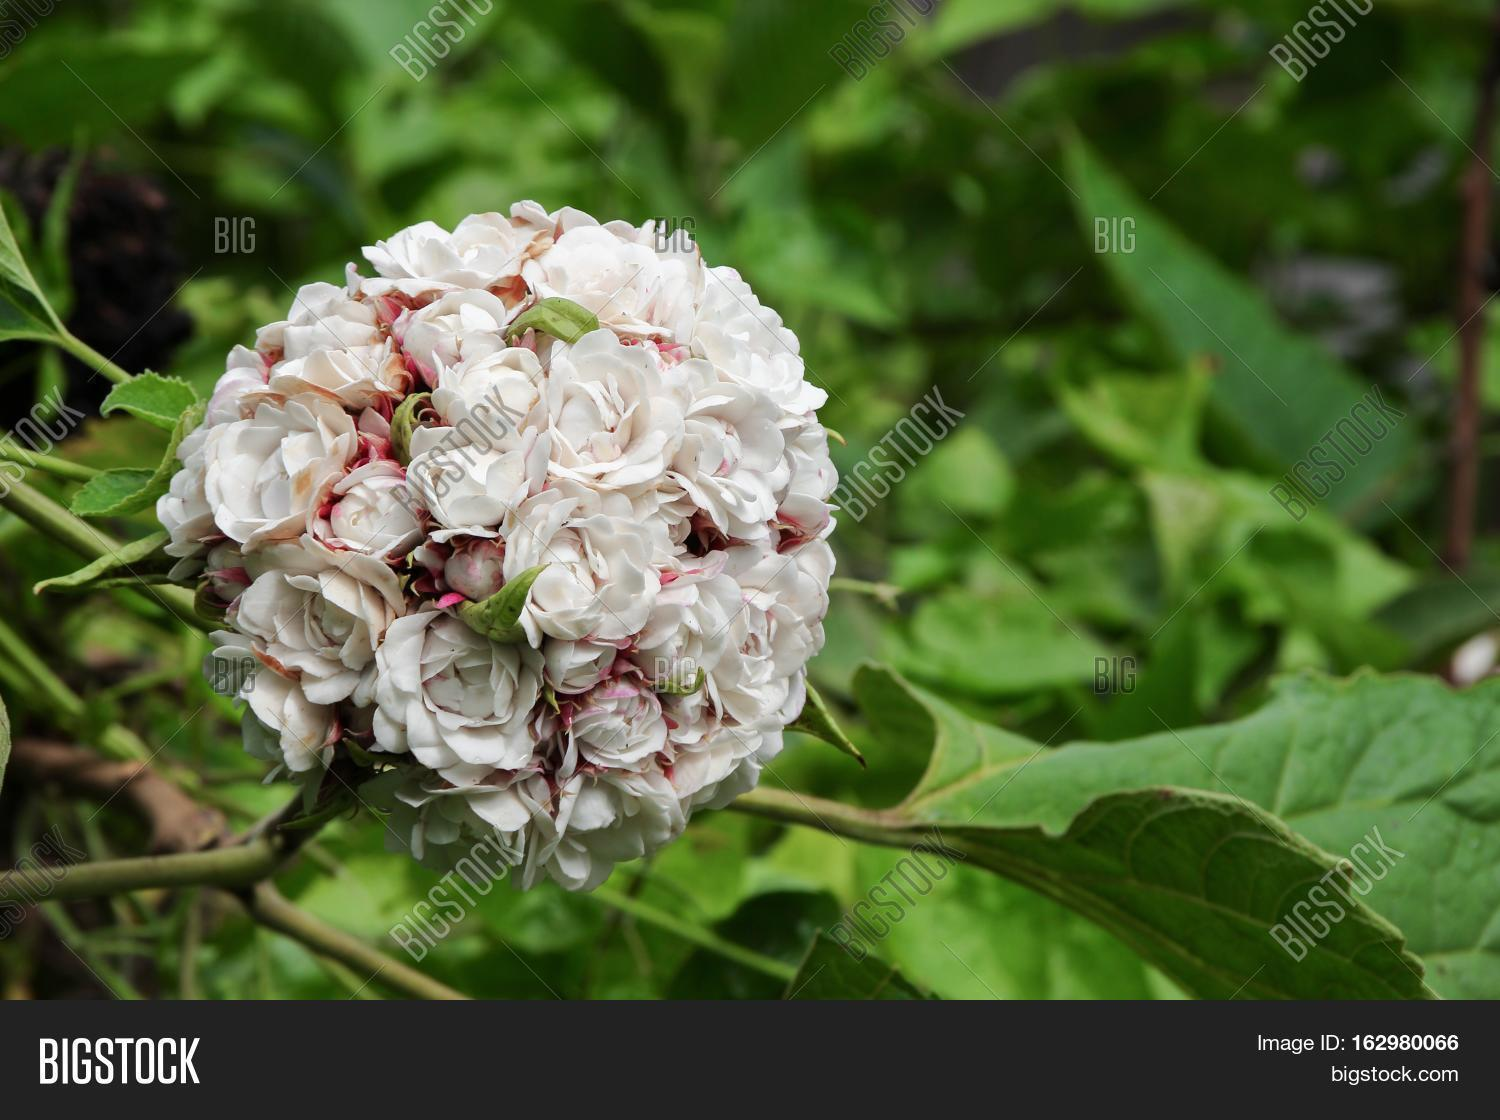 White Flower Ball Image Photo Free Trial Bigstock